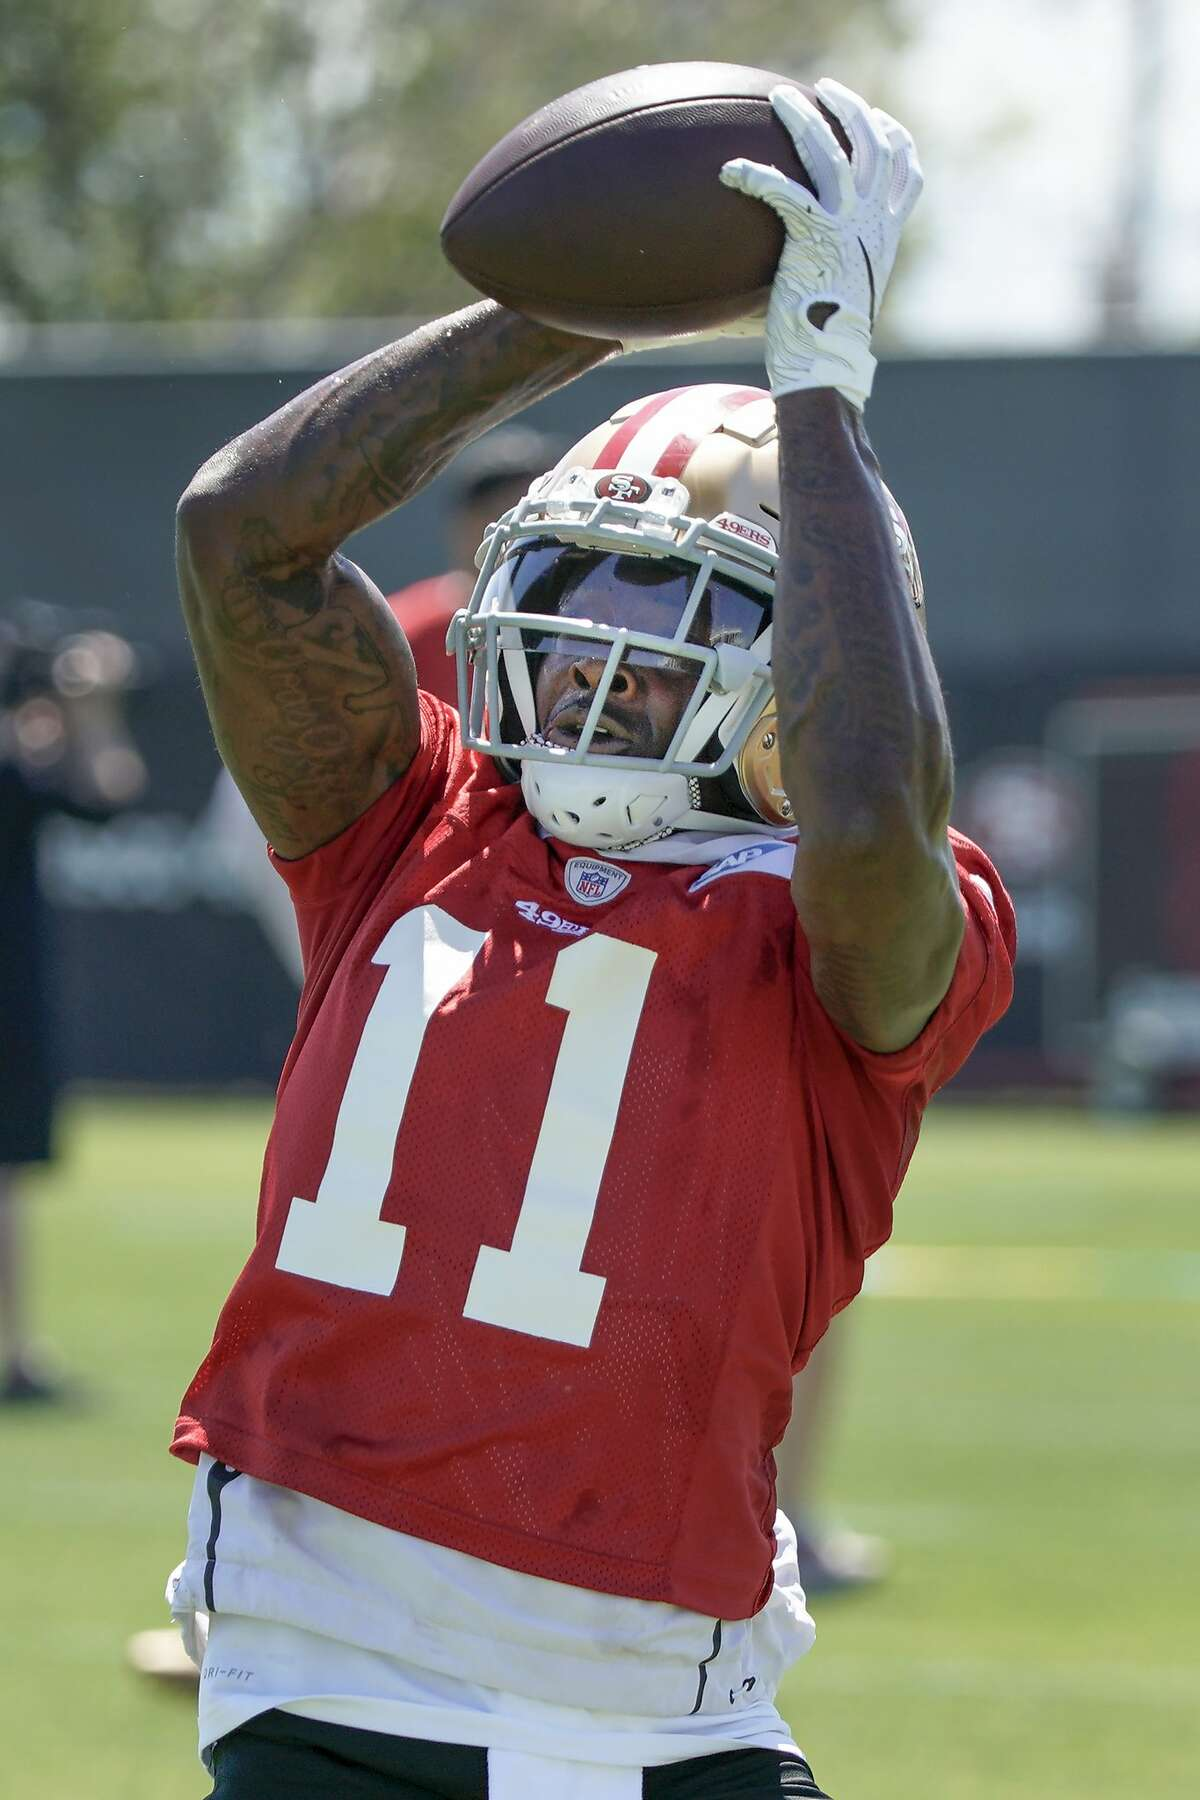 San Francisco 49ers wide receiver Marquise Goodwin (11) catches a pass during a drill at the team's NFL football training facility in Santa Clara, Calif., Tuesday, June 10, 2019. (AP Photo/Tony Avelar)